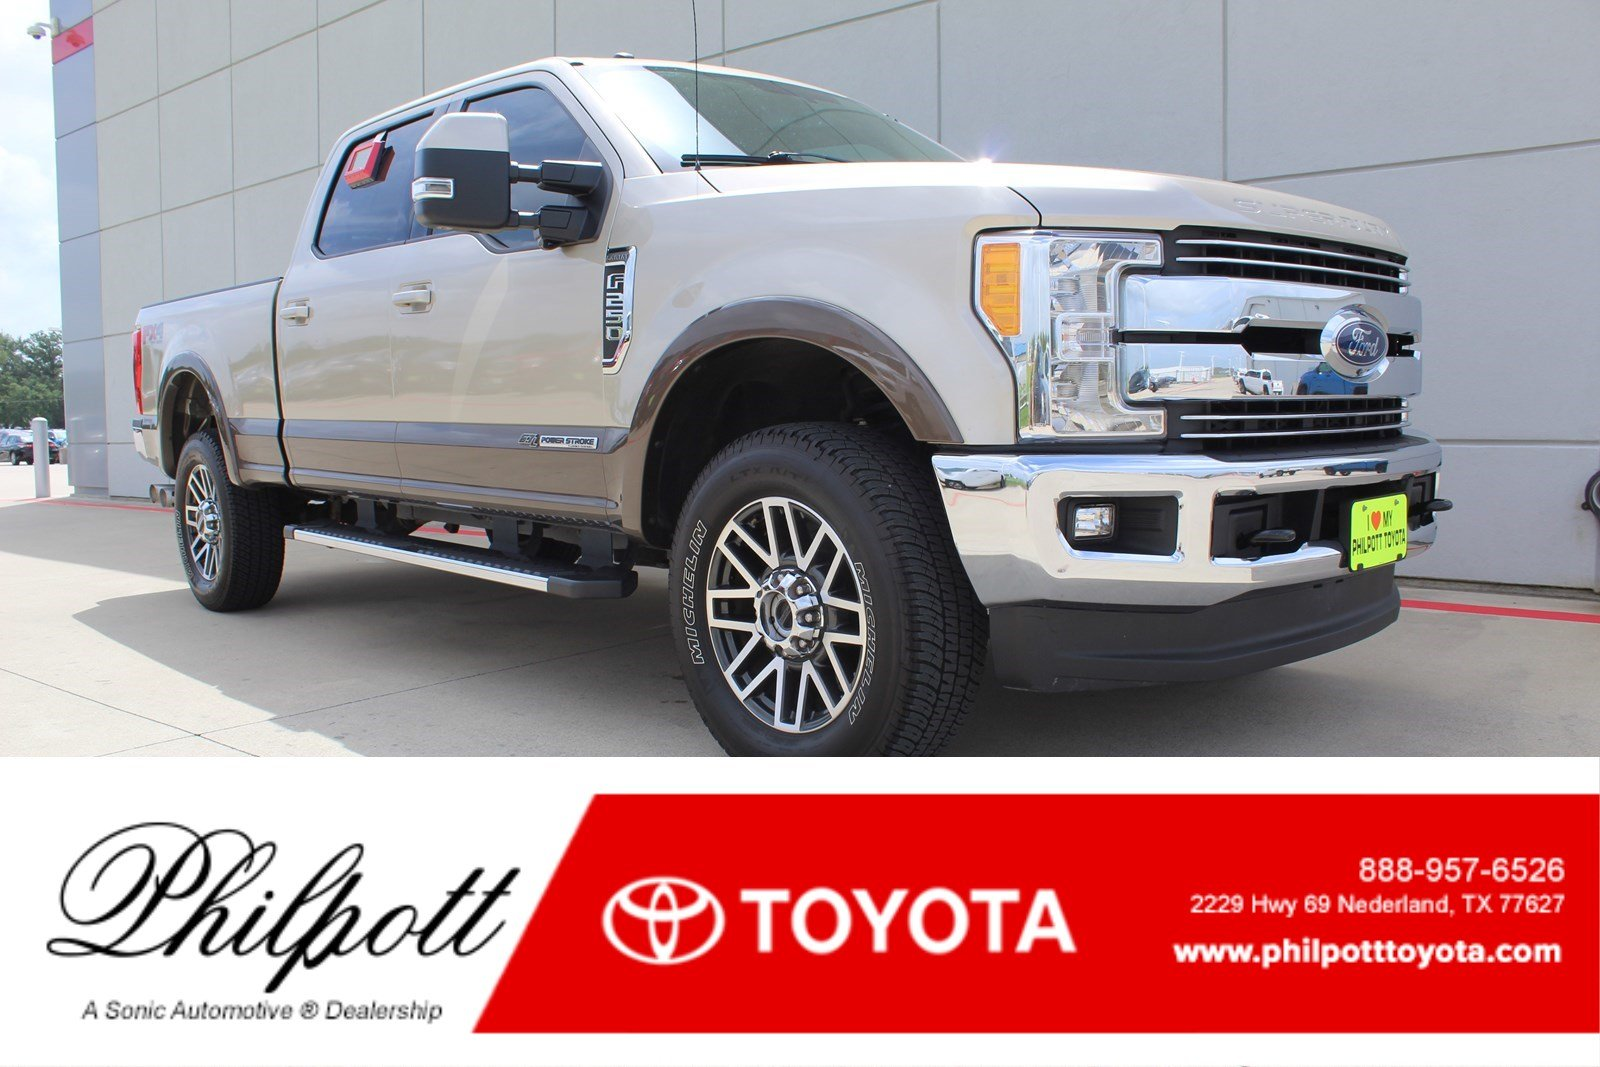 Used 2017 Ford F-250 Lariat  4WD Crew Cab 8 Box Truck Crew Cab for sale in Nederland, TX